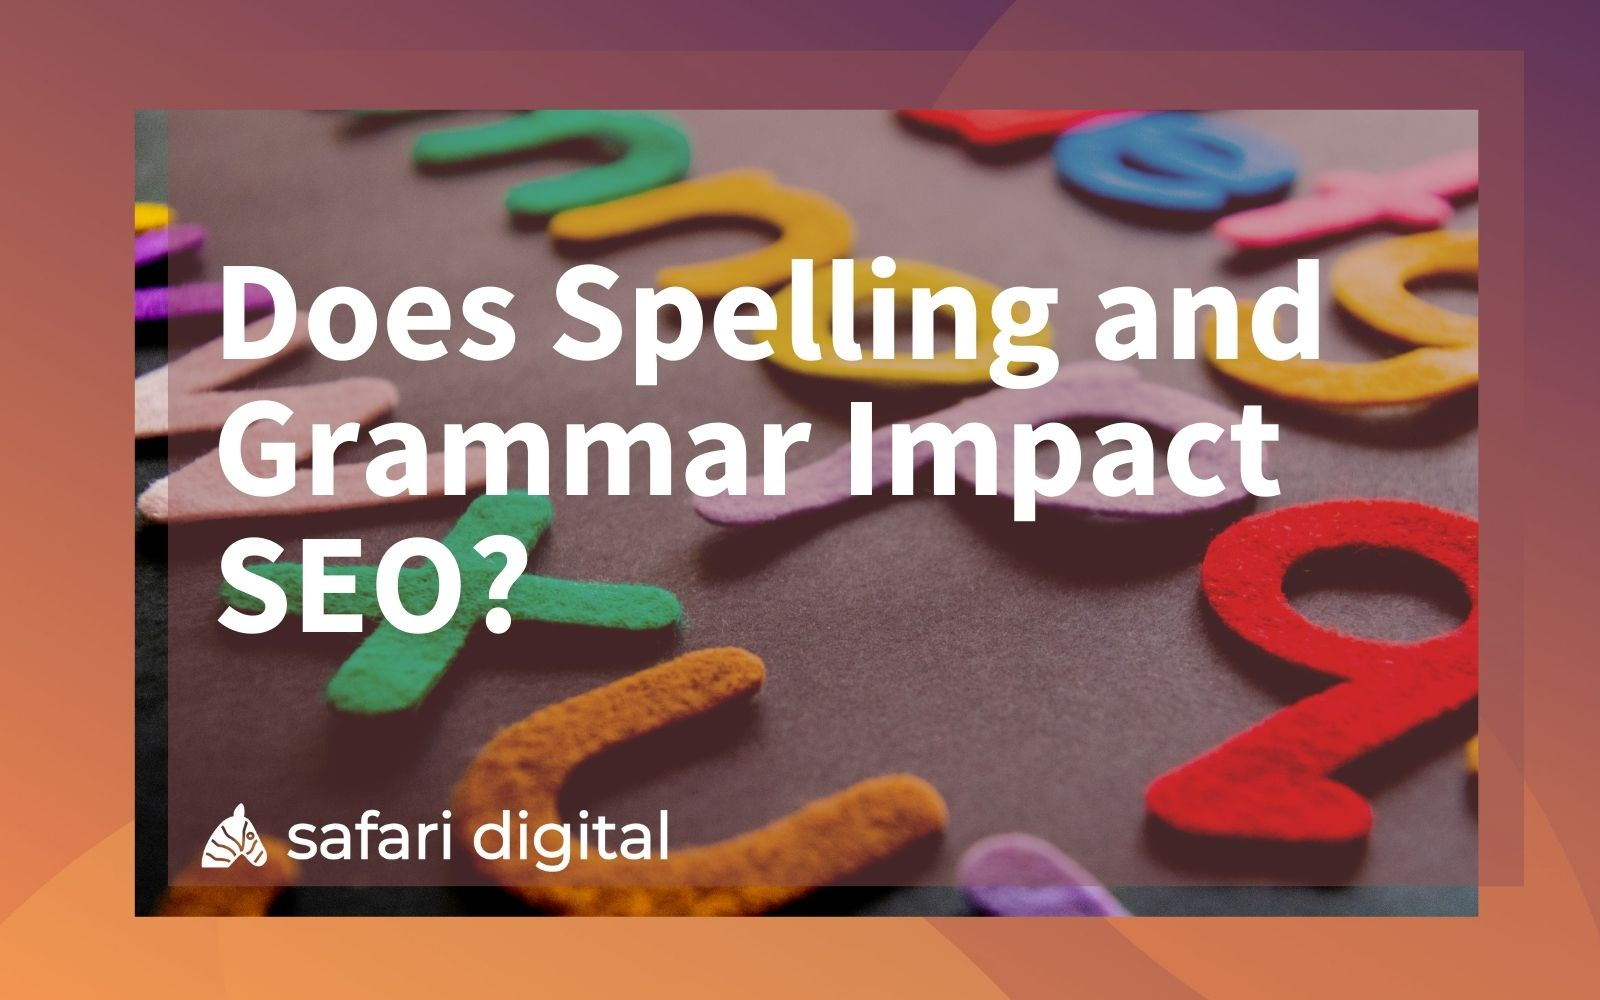 Spelling and Grammar SEO cover image